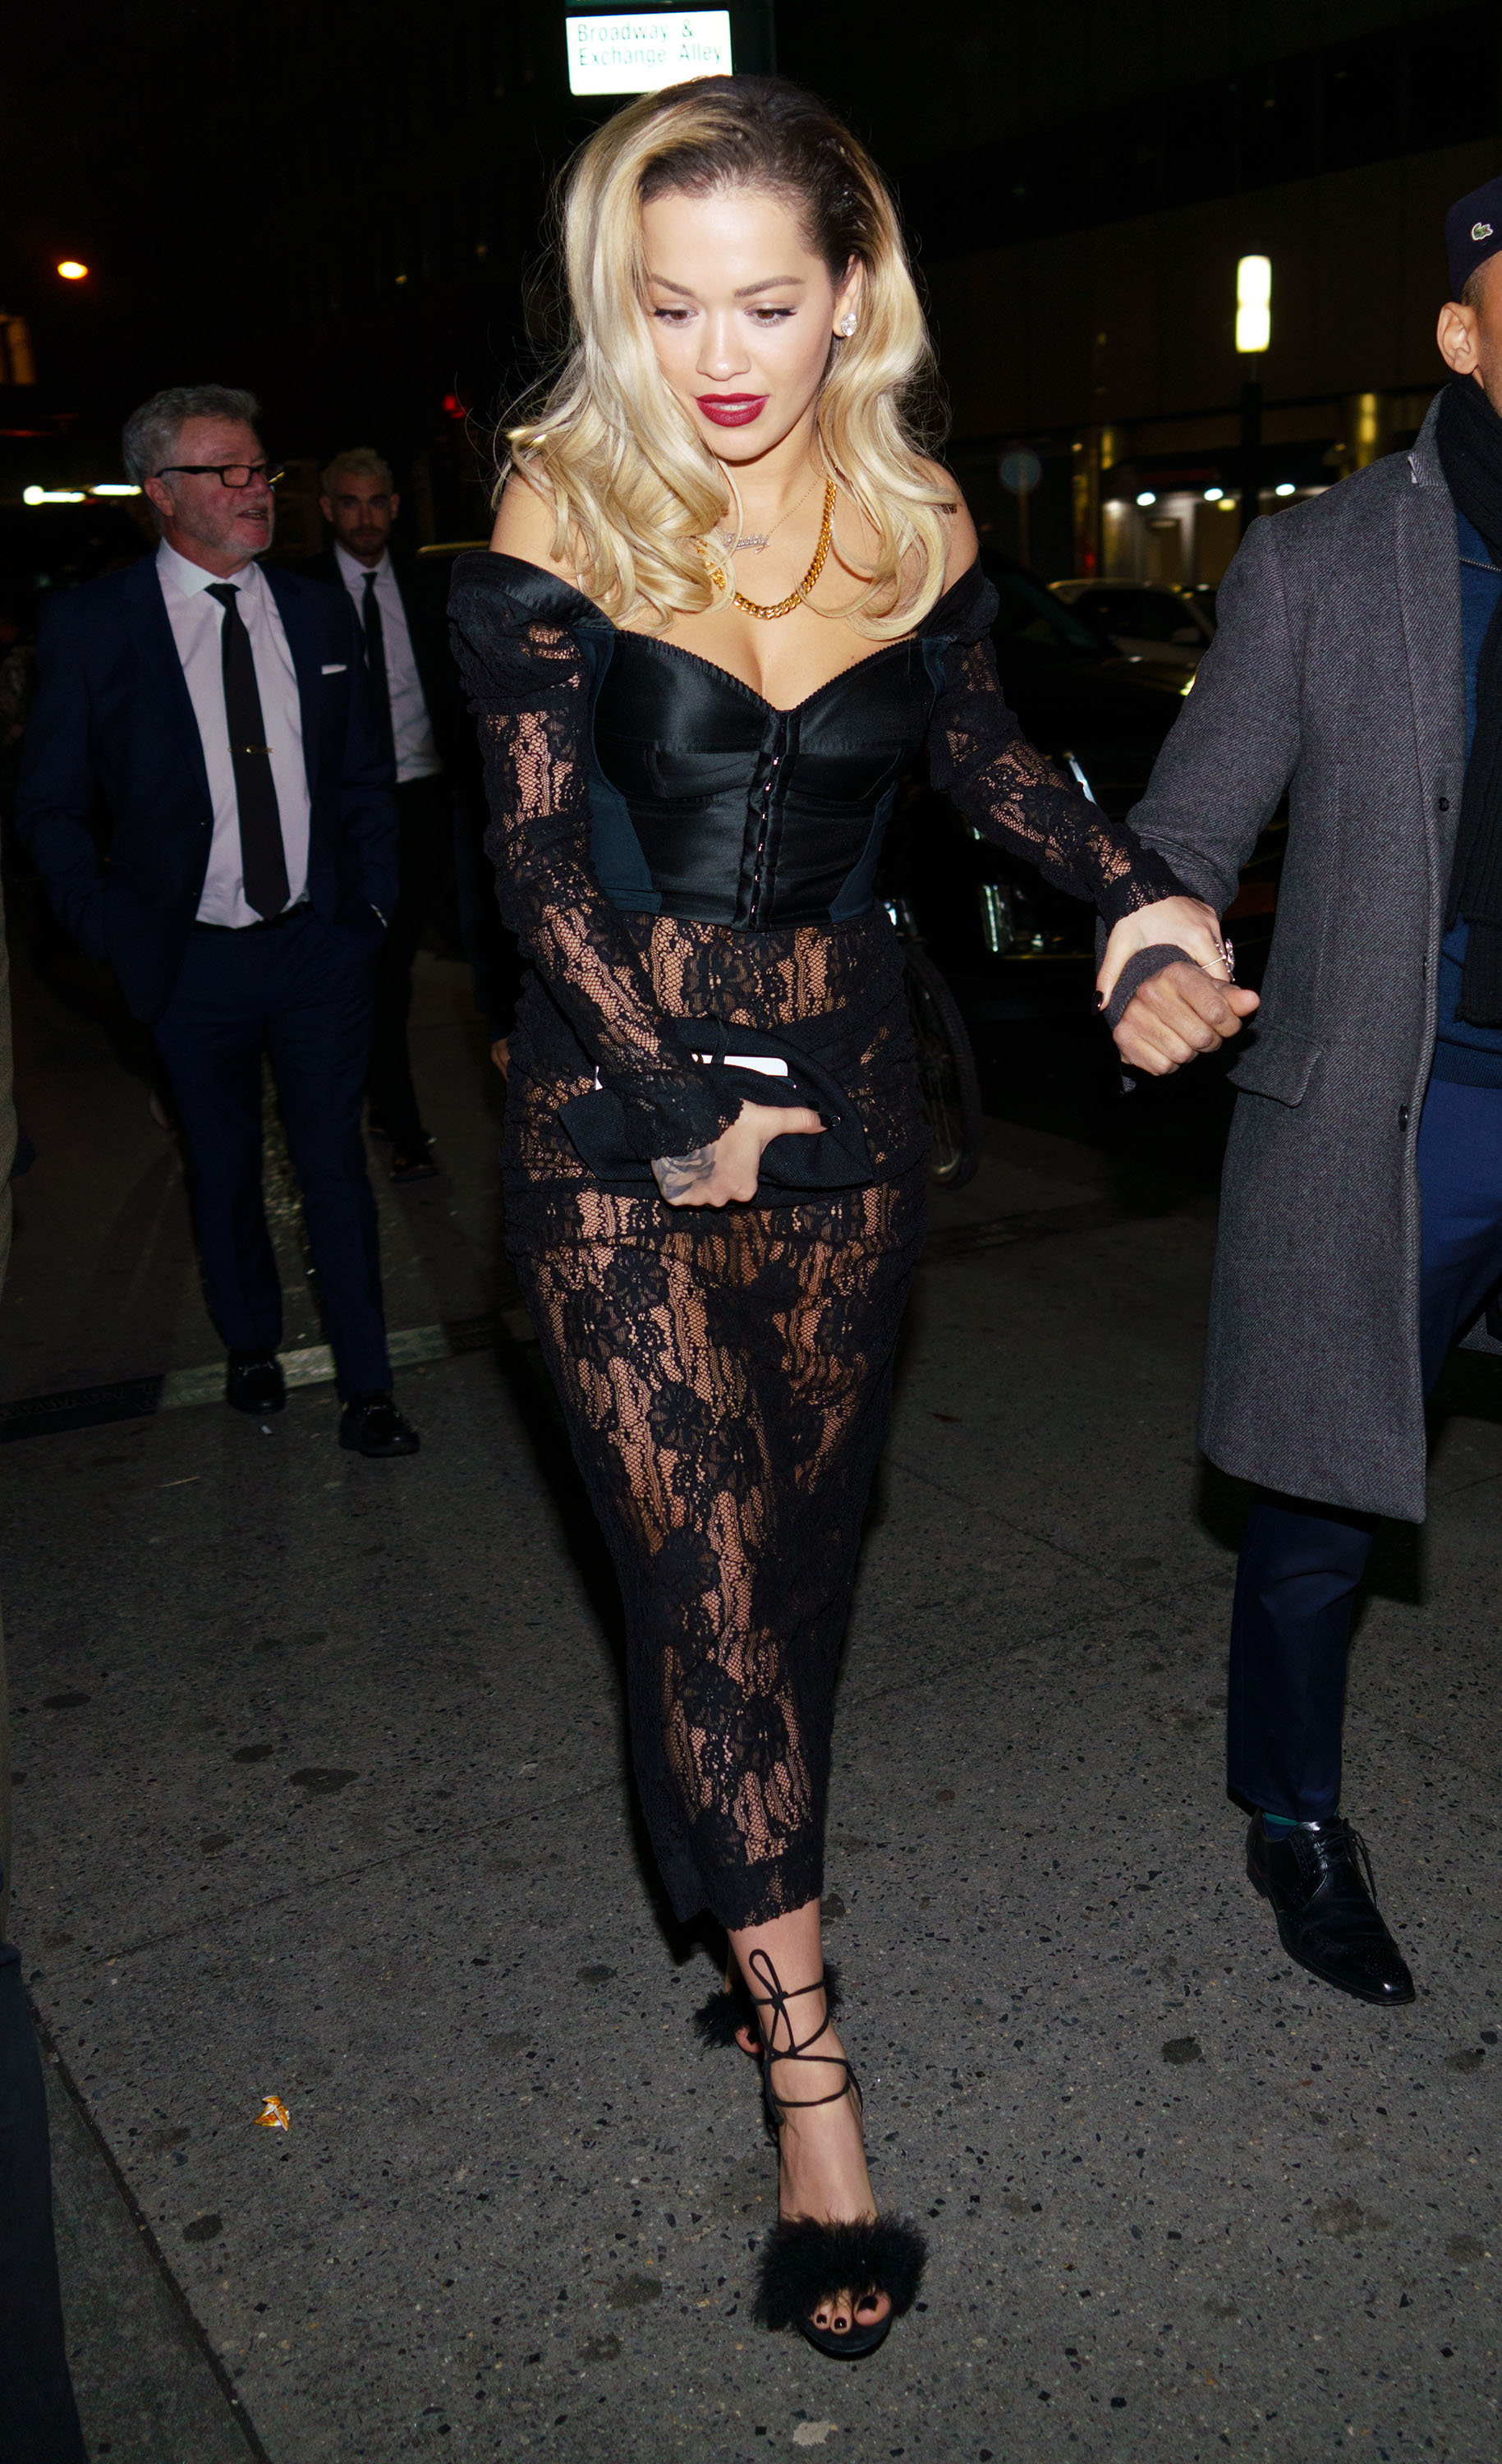 """<p>Rita Ora oozed old-Hollywood glamour at <a href=""""https://style.nine.com.au/2018/01/29/08/20/2018-grammy-awards-red-carpet"""" target=""""_blank"""">this year's Grammy Awards</a>, ruling the red carpet in a chic black gown by Australian label Ralph & Russo.</p> <p>The<em> Your Song </em>singer continued her sartorial hot-streak for an appearance at Universal Music's official GrammyAwards after party in New York City.</p> <p>The 27-year-old opted for a daring black lace ensemble and leather beret that left little to the imagination.<br /> With the curtain closed on the 60th Grammy Awards, Ora wasn't the only A-lister who made a splash with their post-awards attire.</p> <p> Rihanna, Olivia Wilde and Australian model Shanina Shaik also kept the designer outfits and wow factor flowing well into the night.</p> <p>Click through to see all the highlights from the after parties of the 60th Grammy Awards.</p>"""